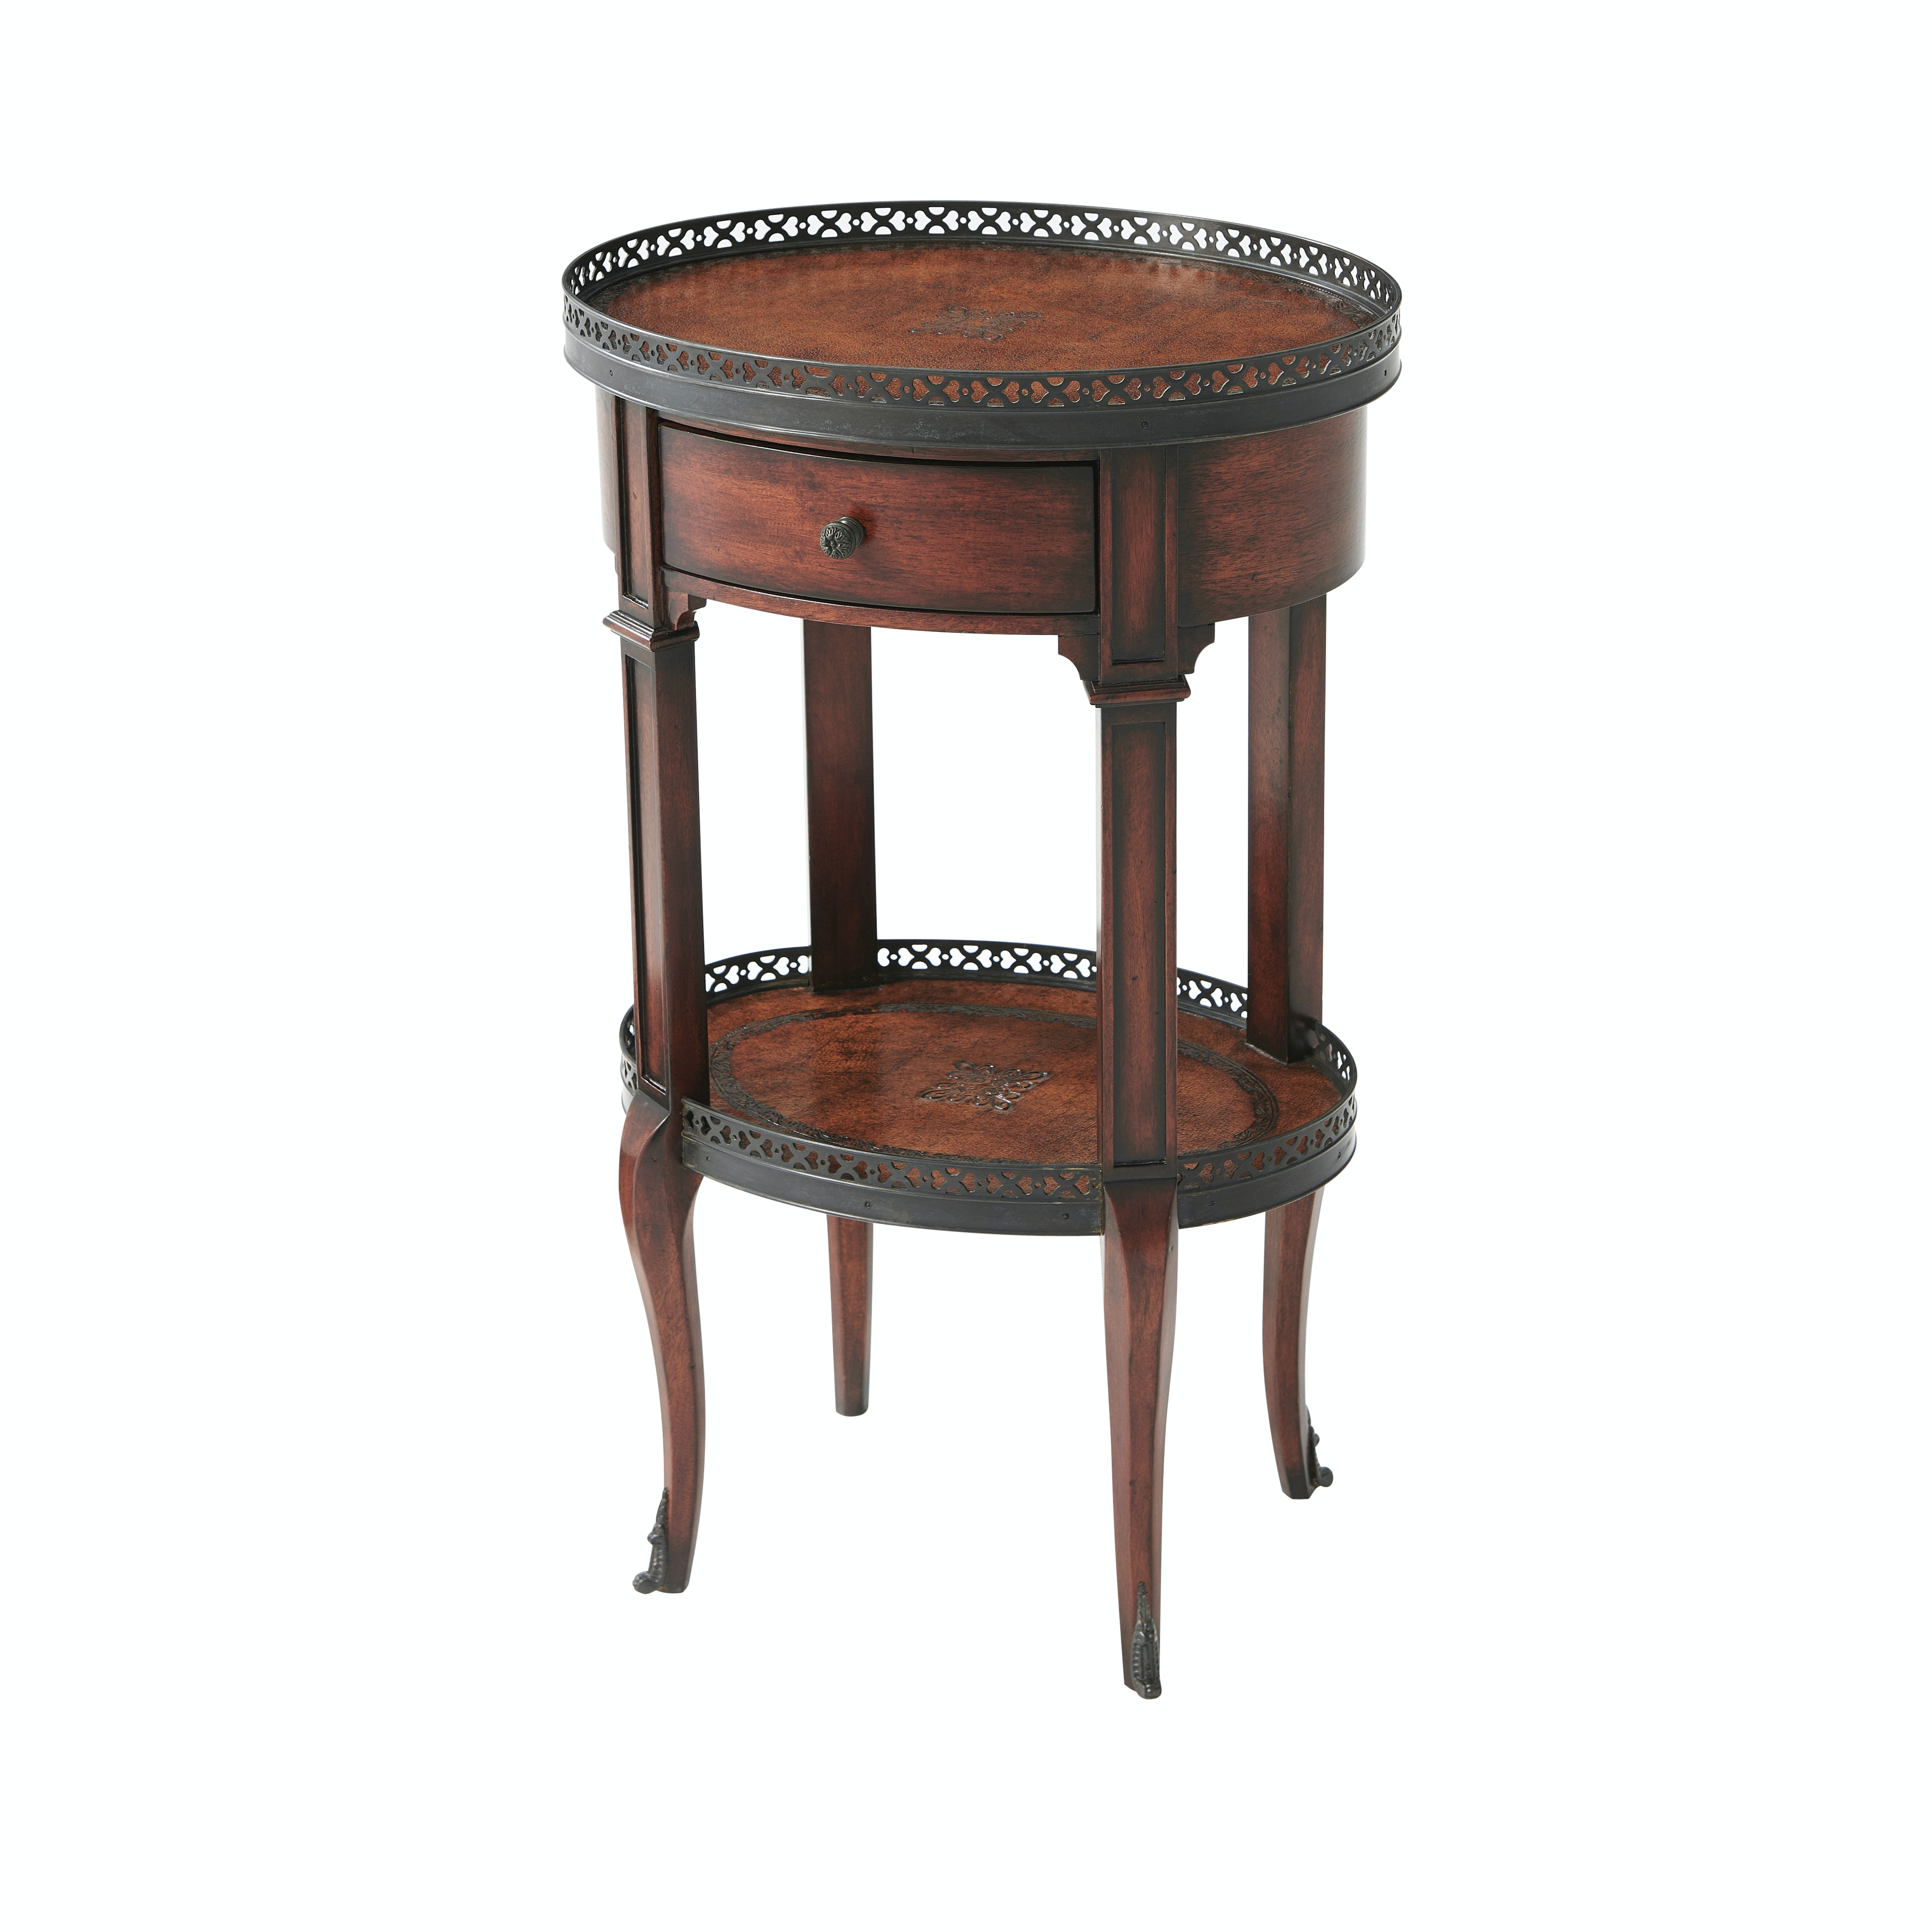 Theodore Alexander Furniture Louis XVI Sometime Table 5000 028